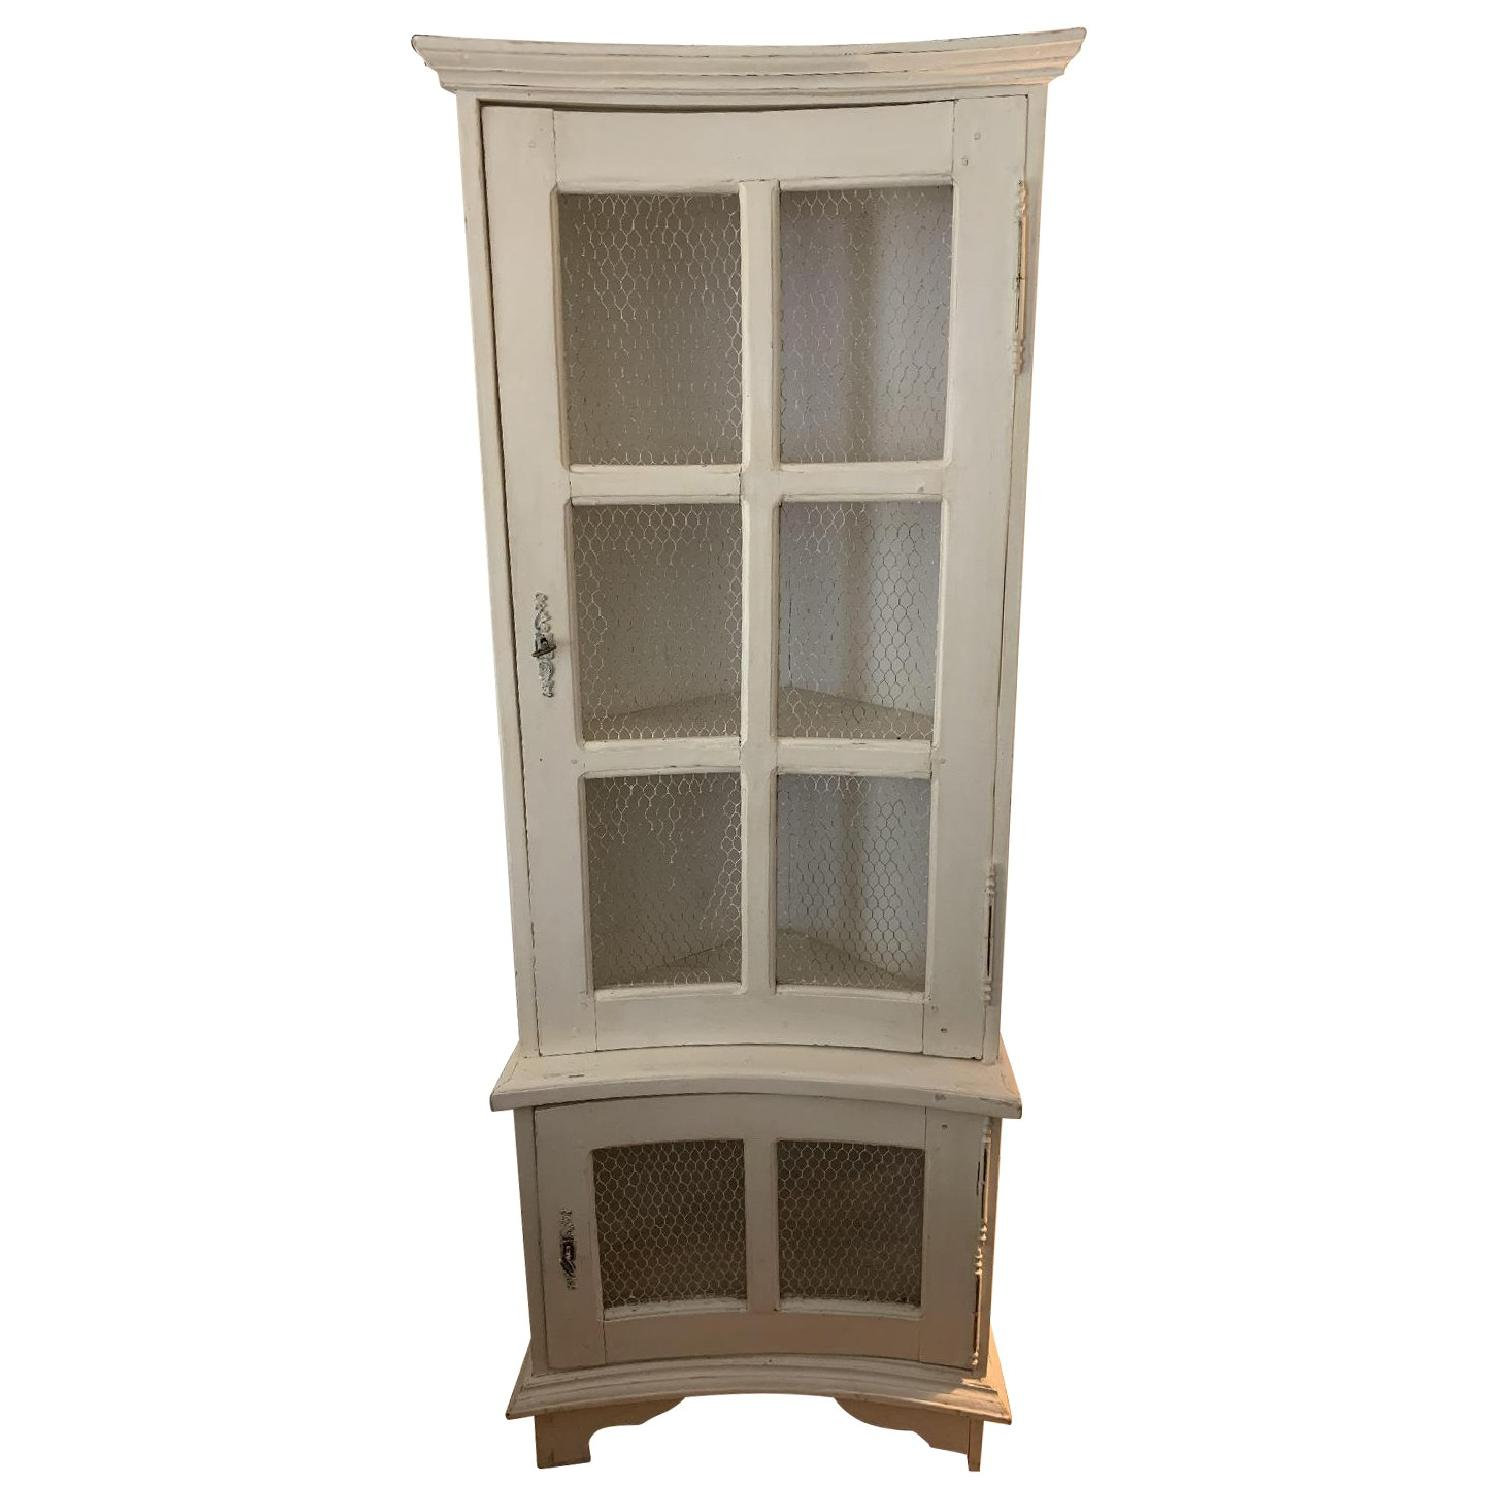 Celton Paris Shabby Chic Corner Armoire